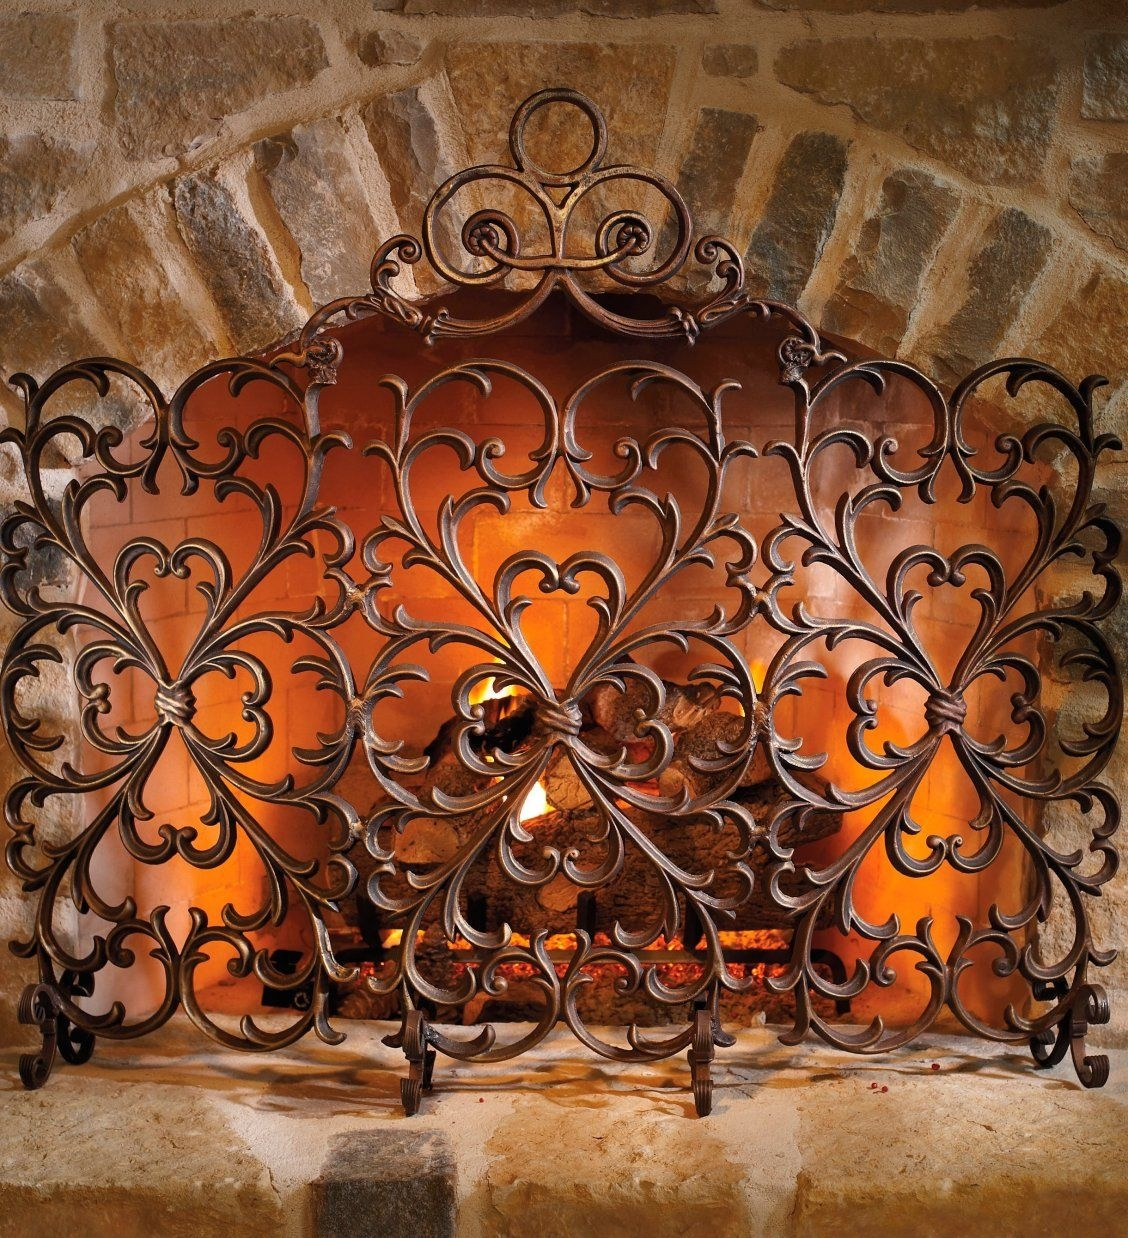 decorative fireplace screens wrought iron foter rh foter com rod iron fireplace screens rod iron fireplace screens